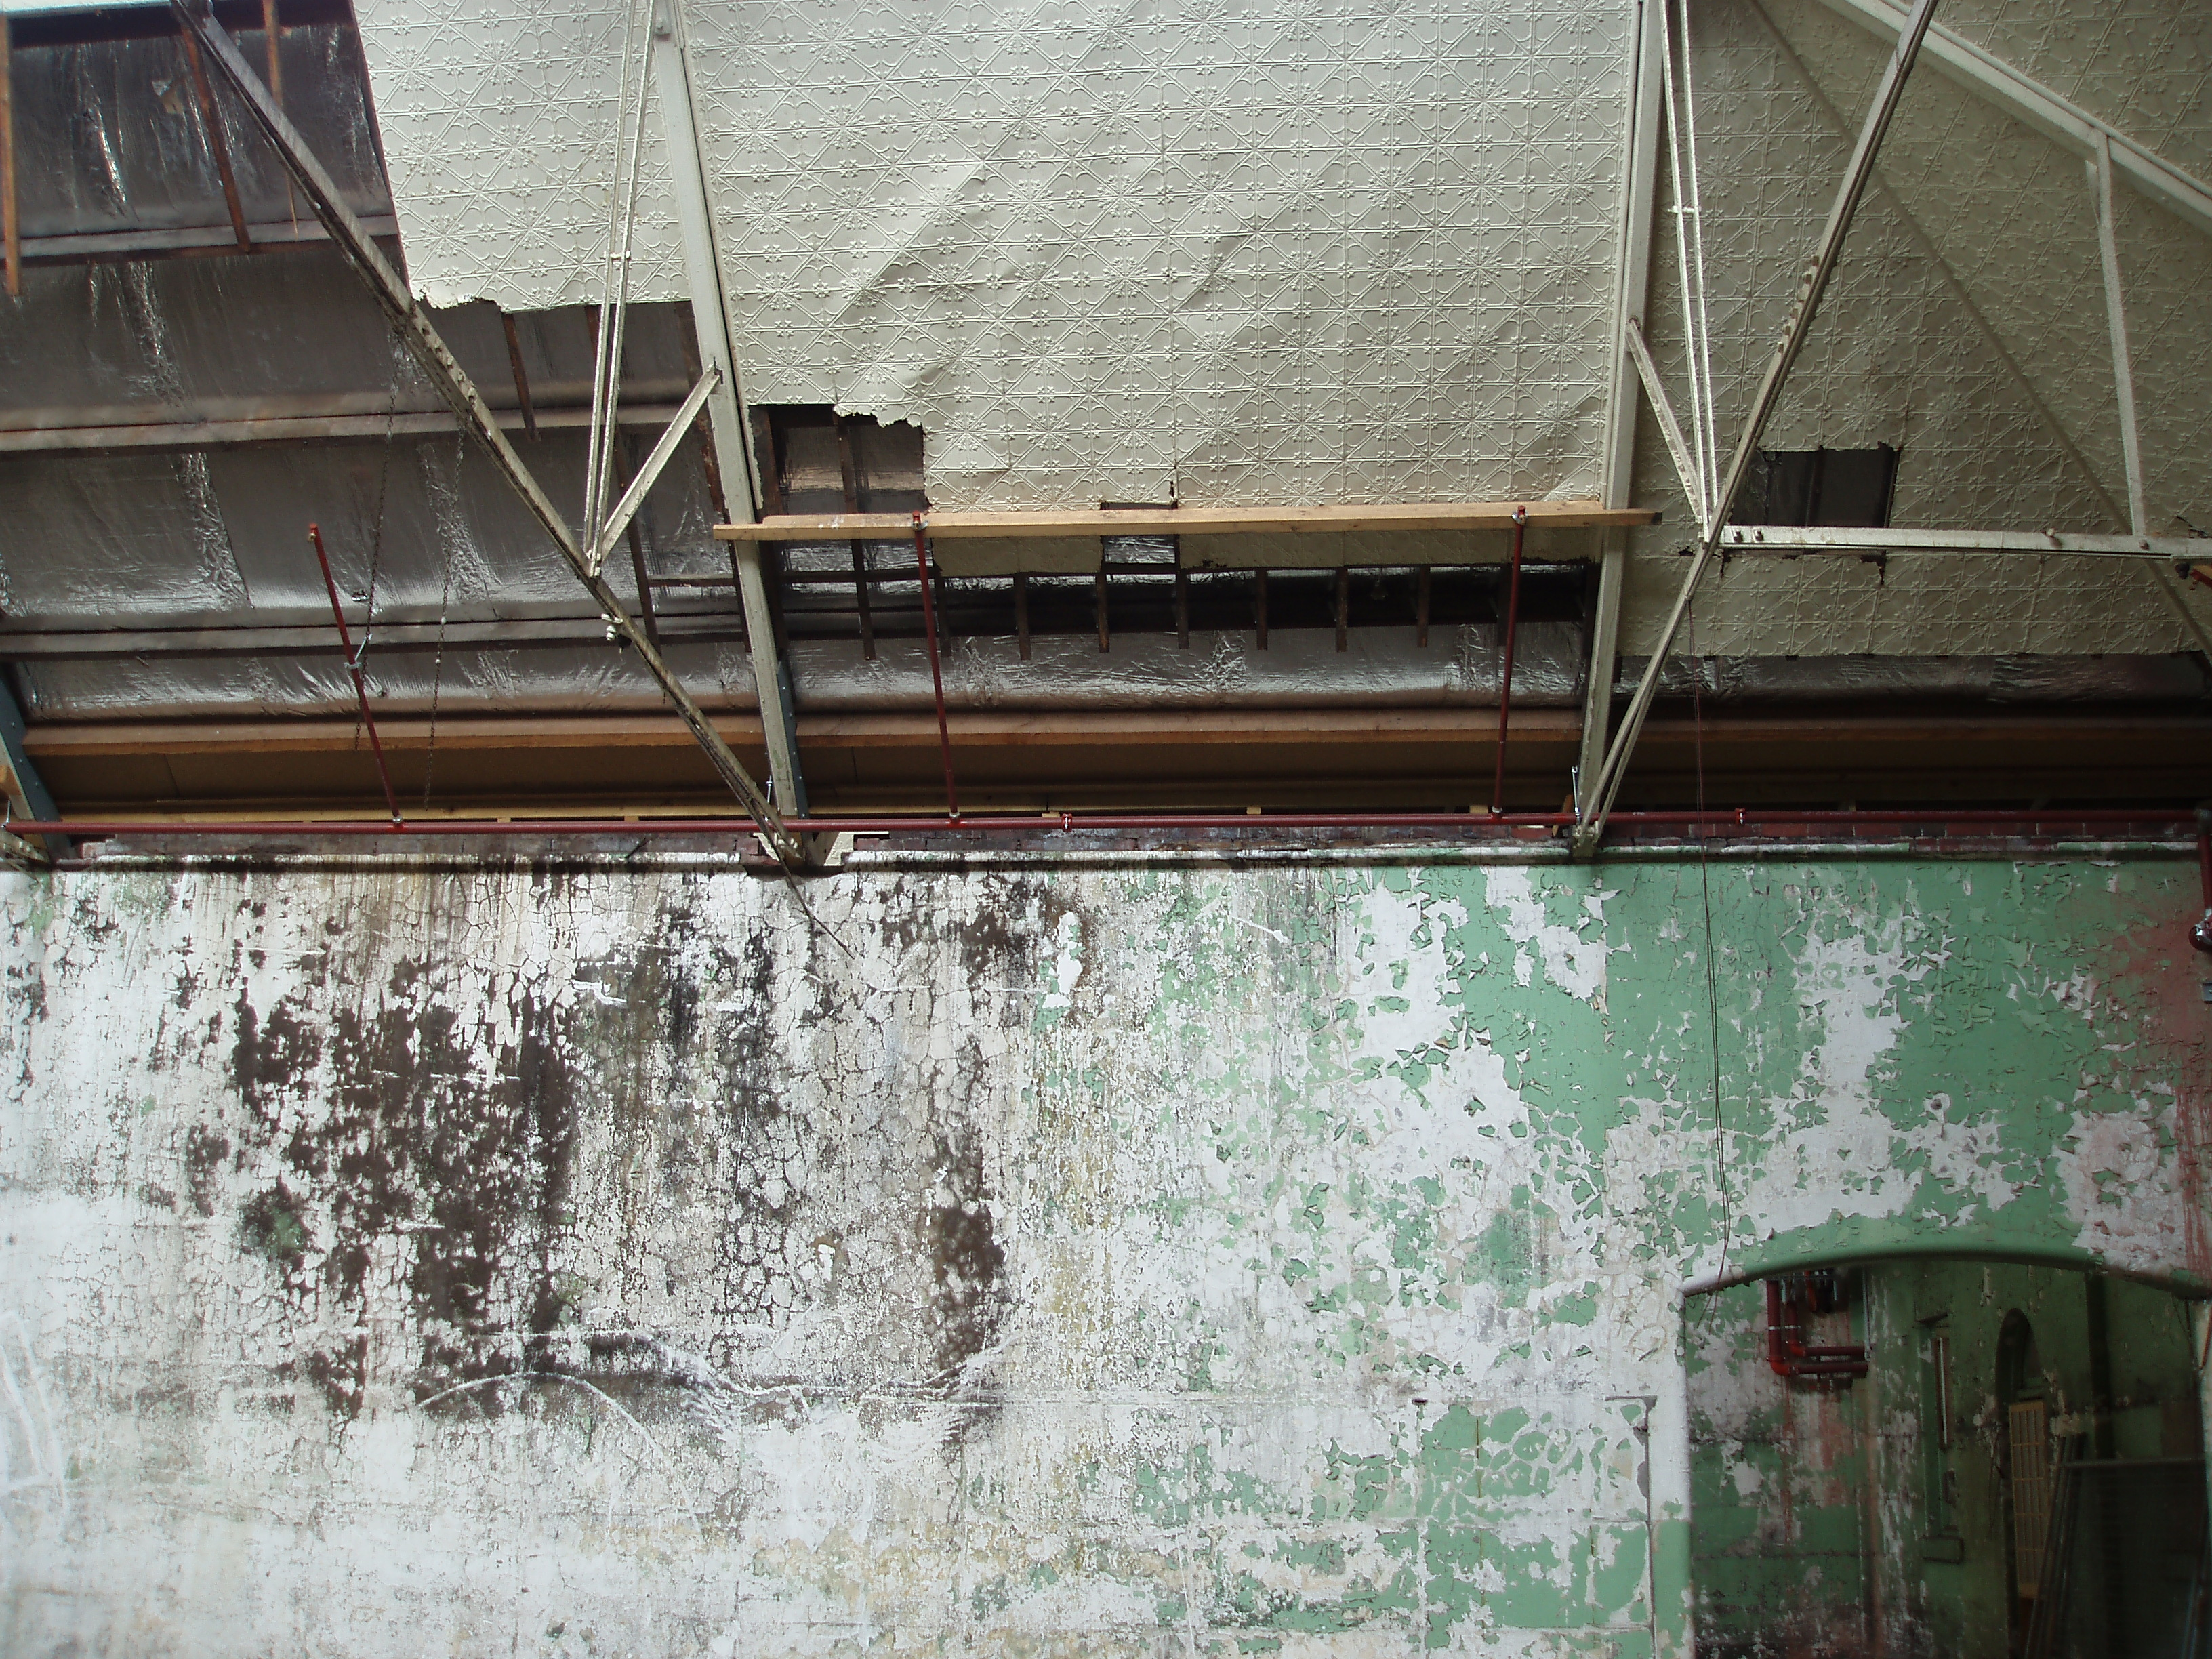 an old building interior with falling roof